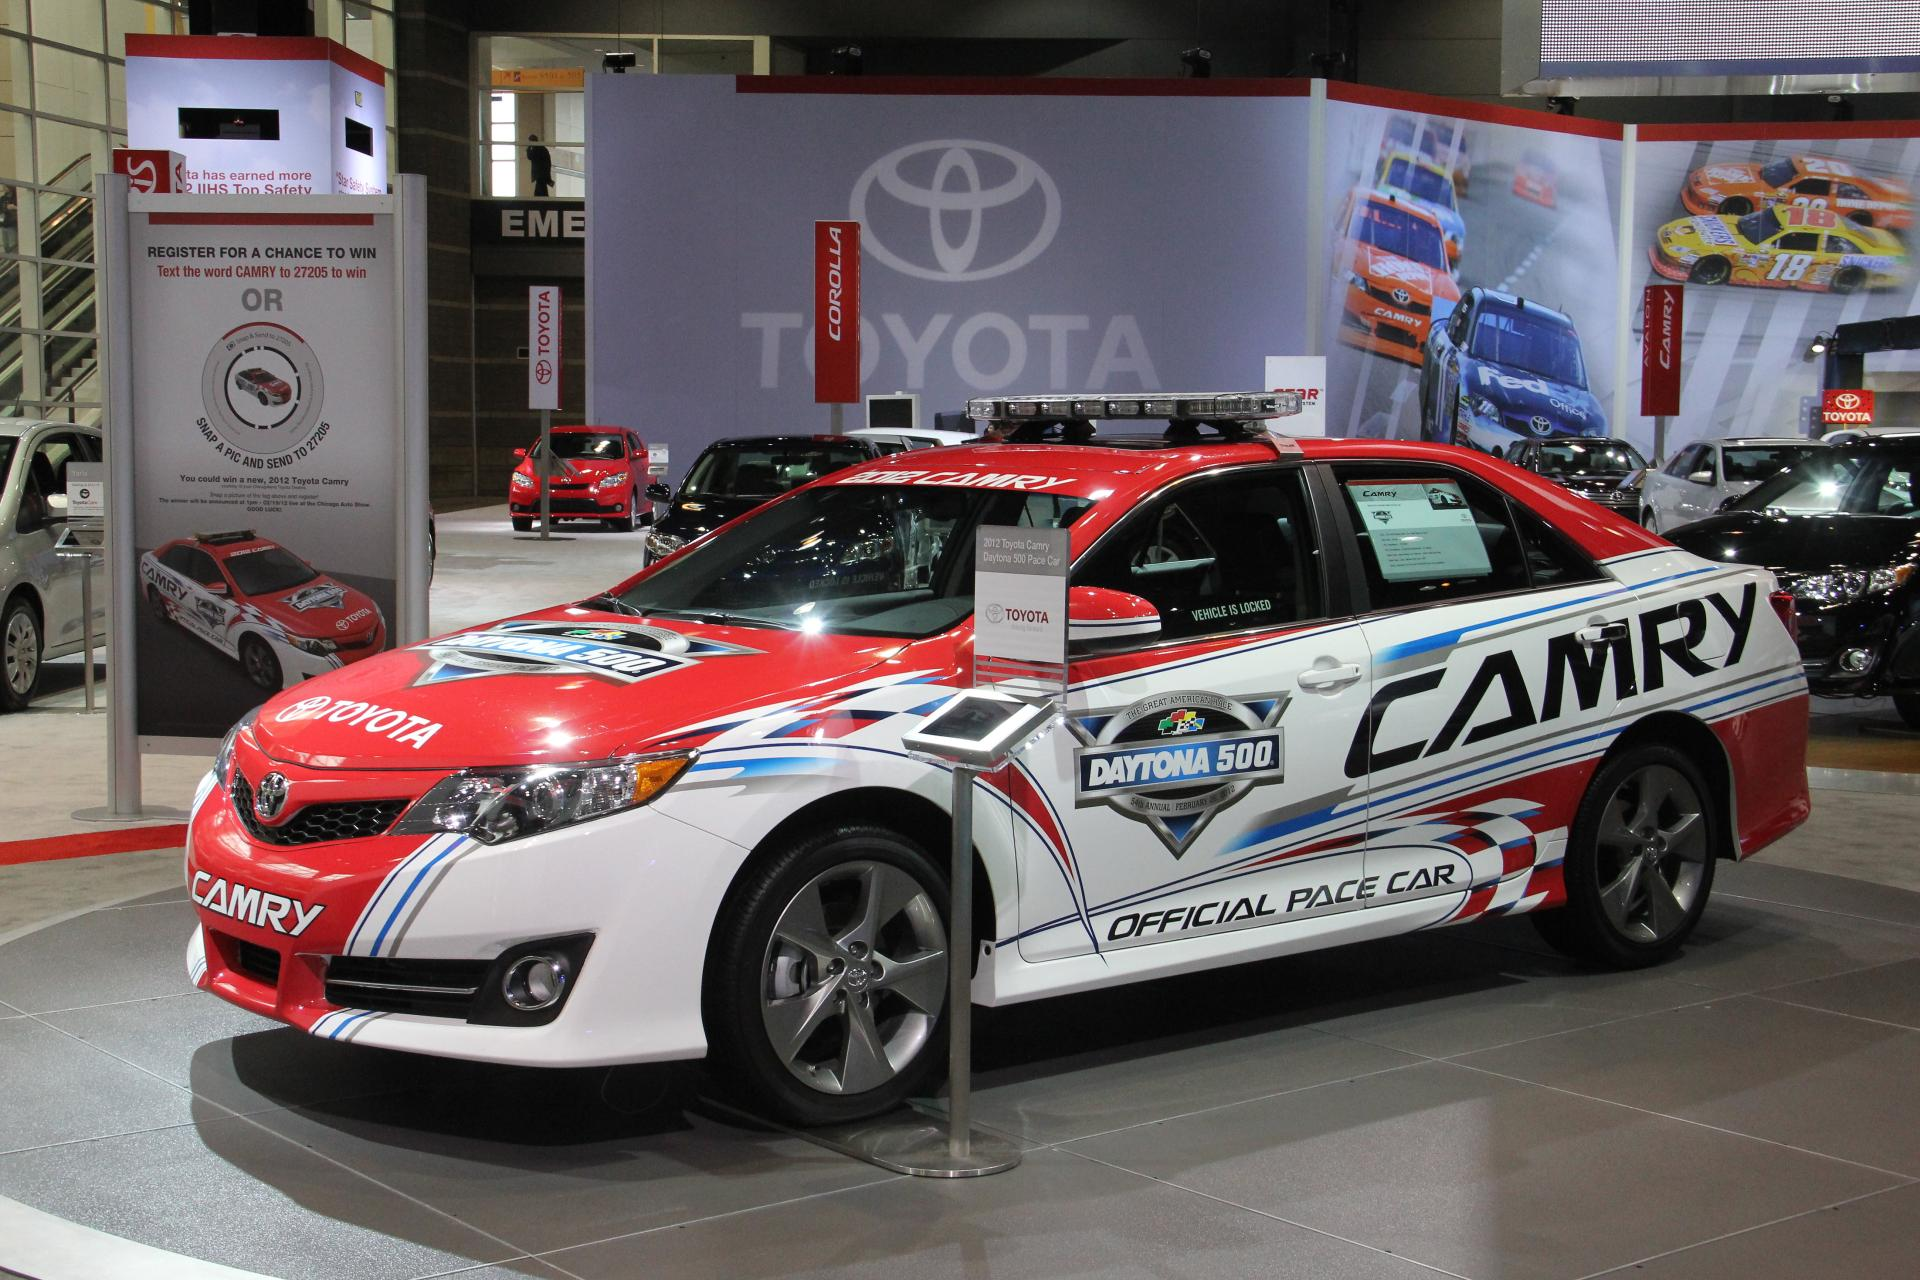 Get Information On New 2018 Toyota Camry Daytona 500 Pace Car Cars And Find Photos Click Through High Resolution